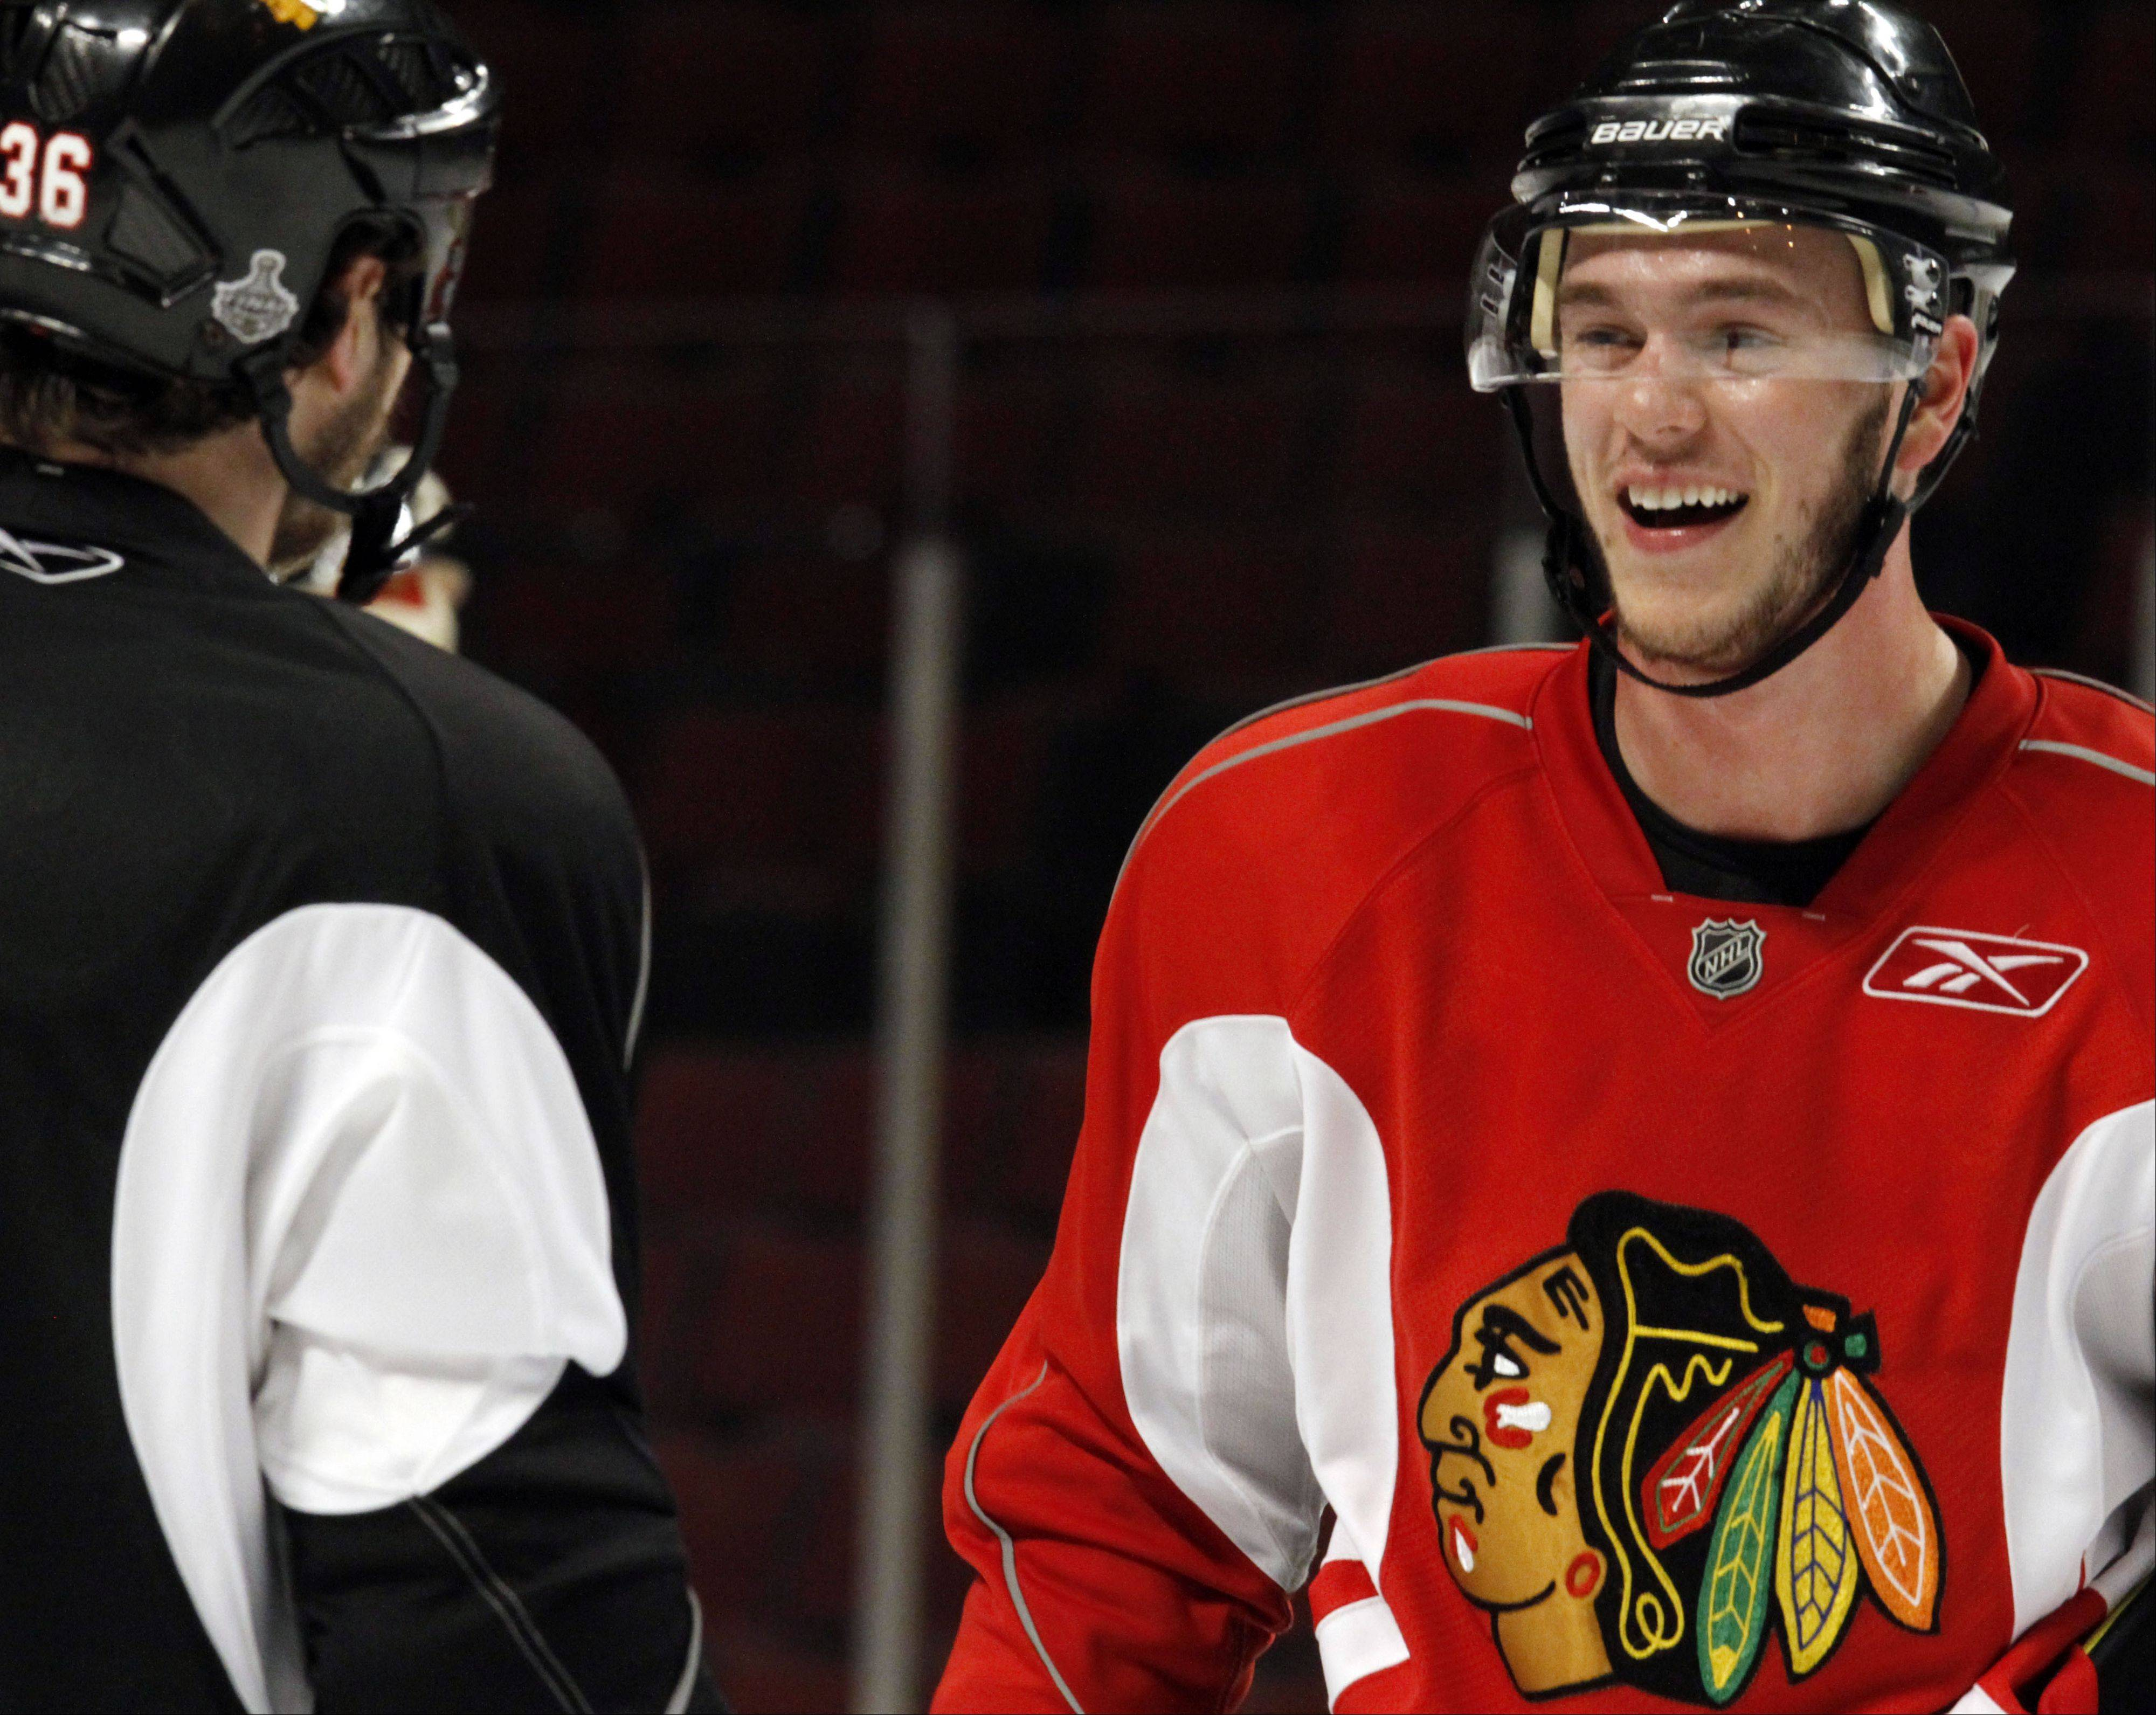 "Chicago Blackhawks' Jonathan Toews, right, seen here in 2010 says he's ready to get back on the ice on the heels of a tentative deal between players and owners. ""As players we need to keep showing out fans we care. We might have a long road ahead of us there, but for now it's great to know we'll be back on the ice very soon,"" Toews said via text on Sunday."